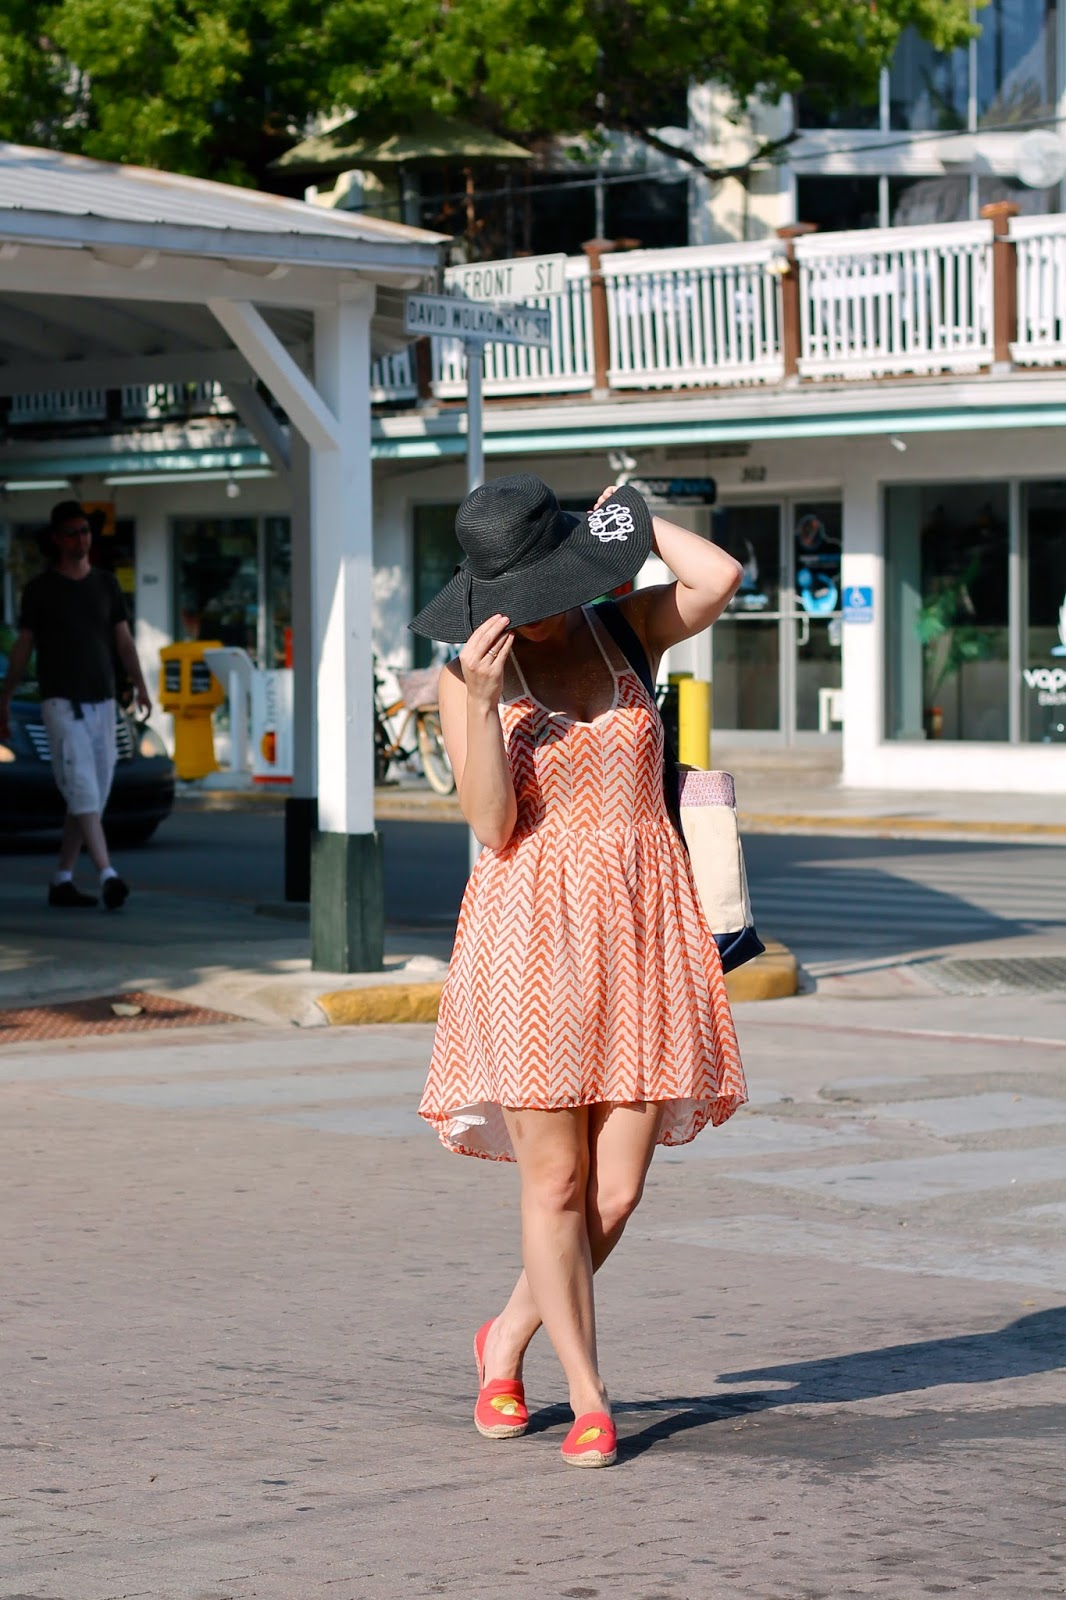 style blog, fashion blog, Miami fashion blogger, what i wore, look book, modcloth, Dixieland Monogram, Soludos, Ray-Ban, Vineyard Vines, ootd, summer style, vacation style, outfit ideas